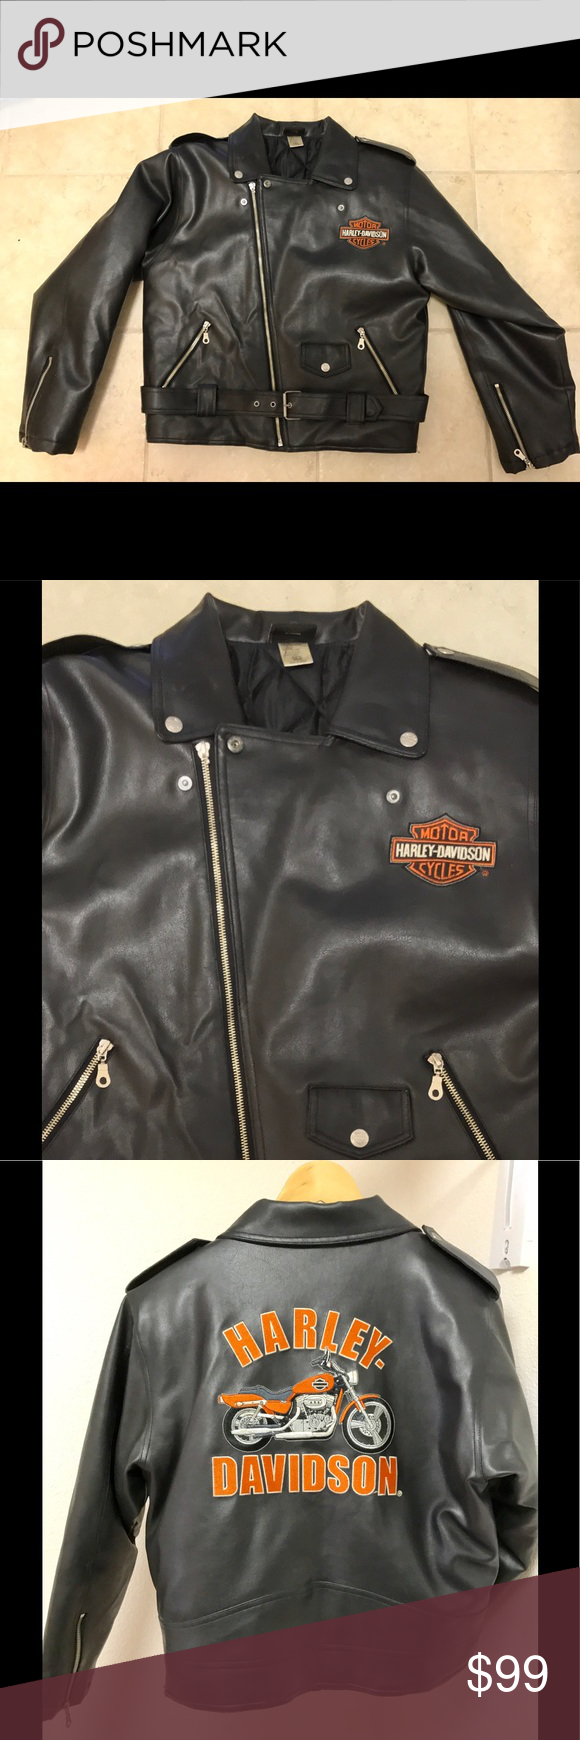 Harley Davidson leather jacket. Nice jacket, used with